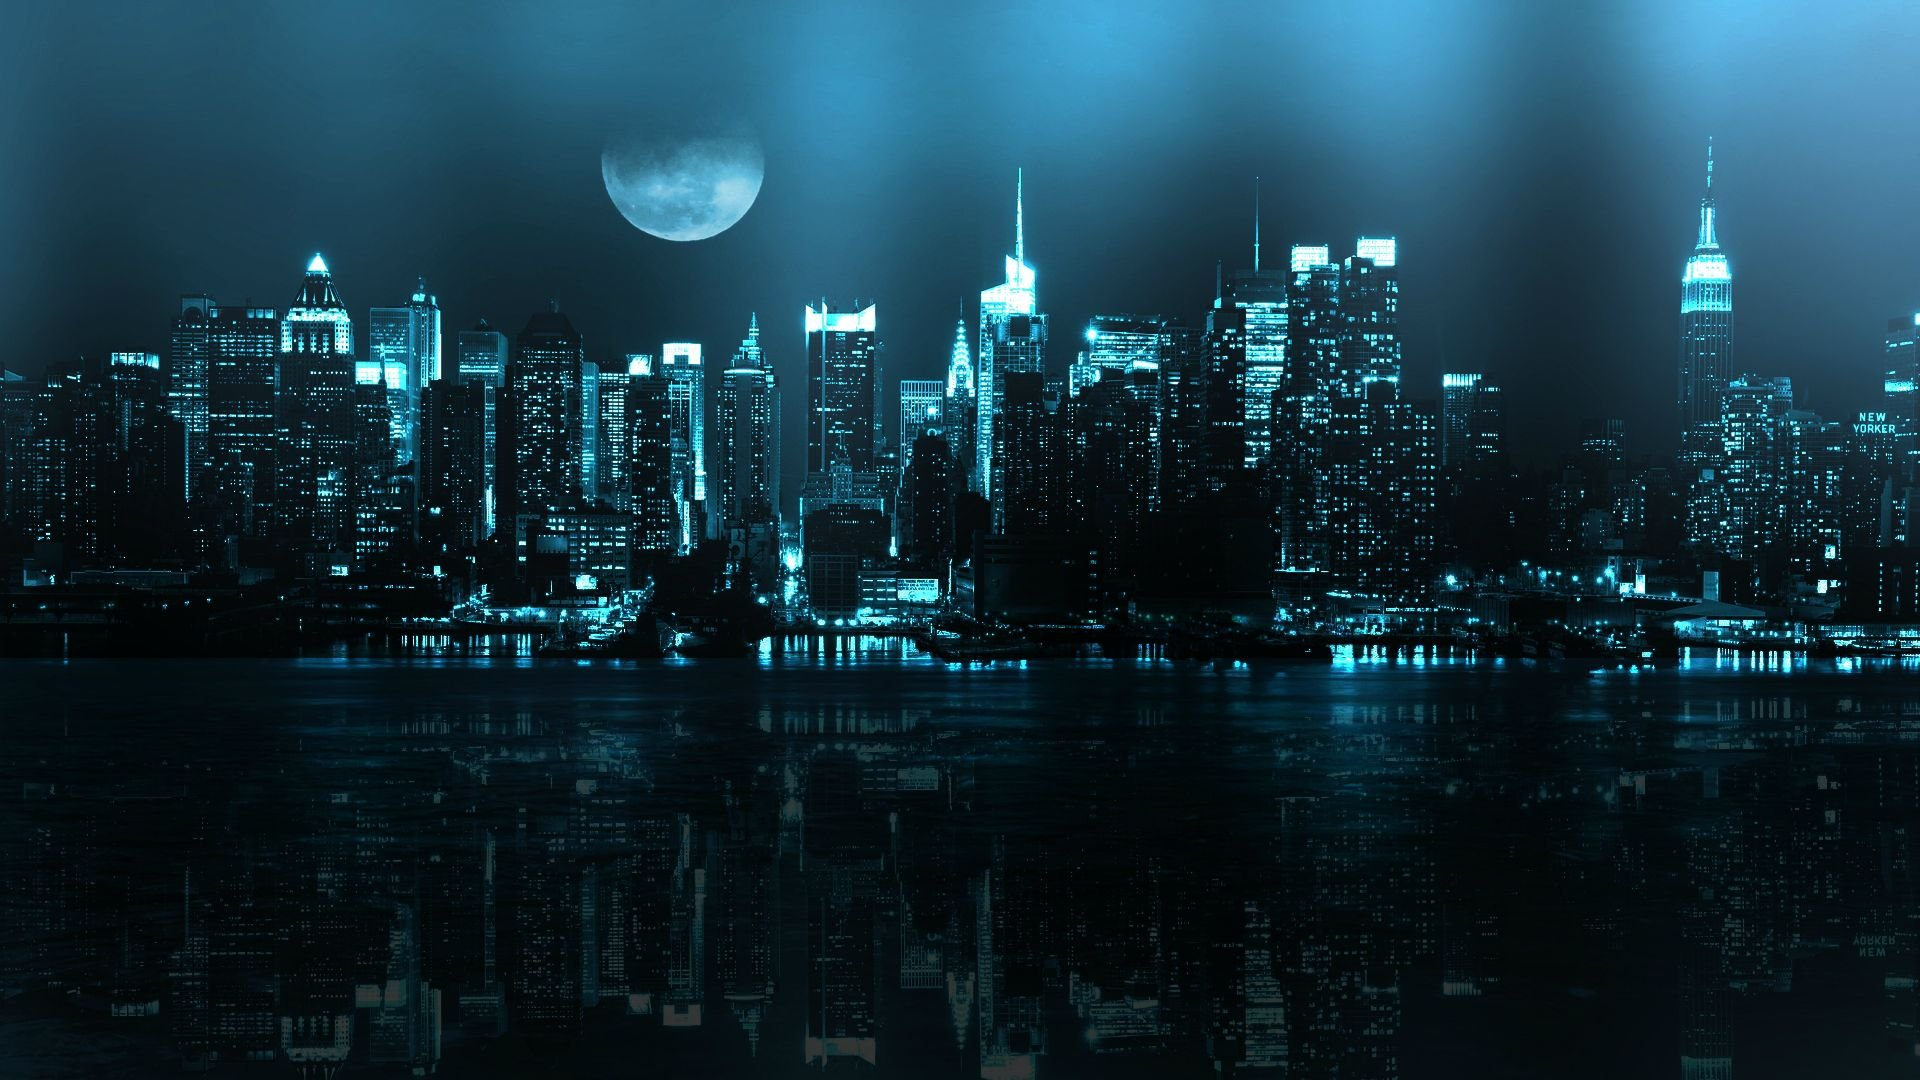 New York City at Night 18442 wallpaper